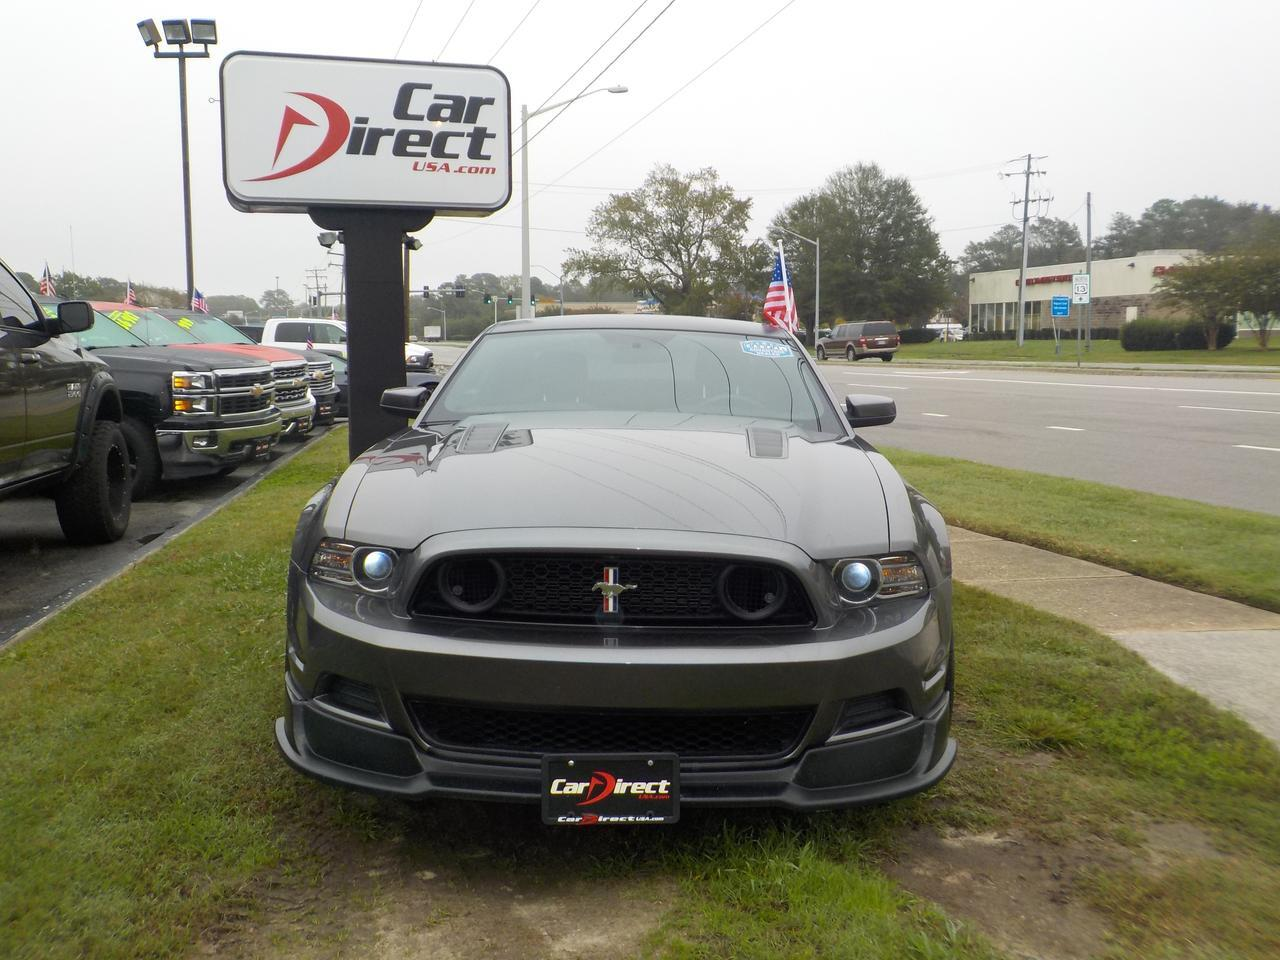 2012 FORD MUSTANG 5.0L GT COUPE WITH BOSS 302 INTAKE, PREMIUM WHEELS, REAR SPOILER,  EXTRA CLEAN, ONLY 49K MILES! Virginia Beach VA